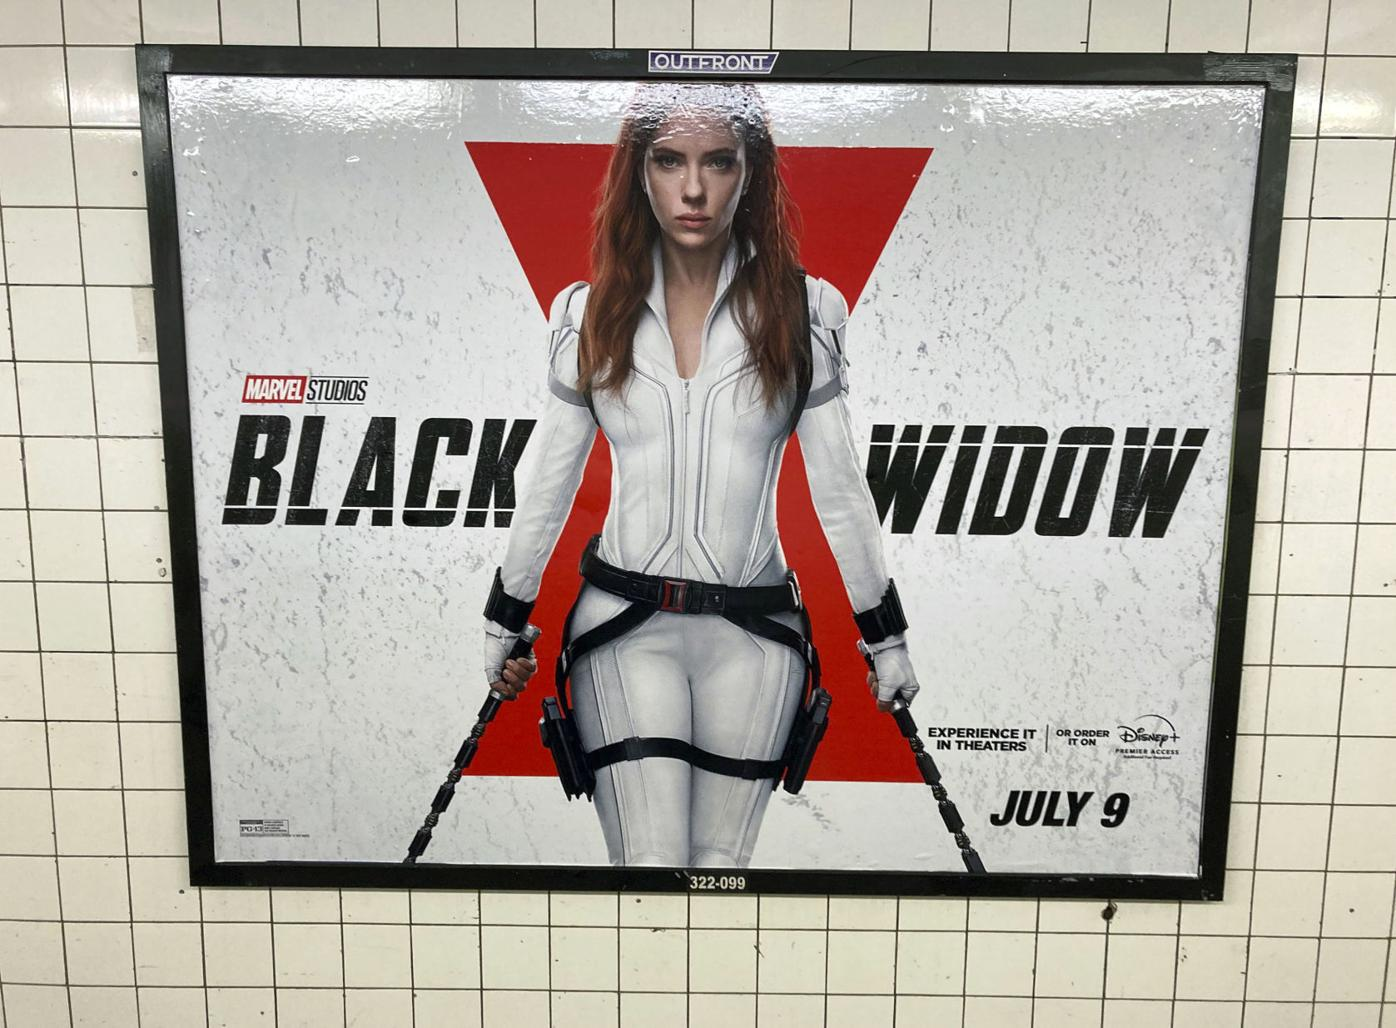 """Marvel Studios """"Black Widow"""" promotional poster in NYC - 6/27/21"""